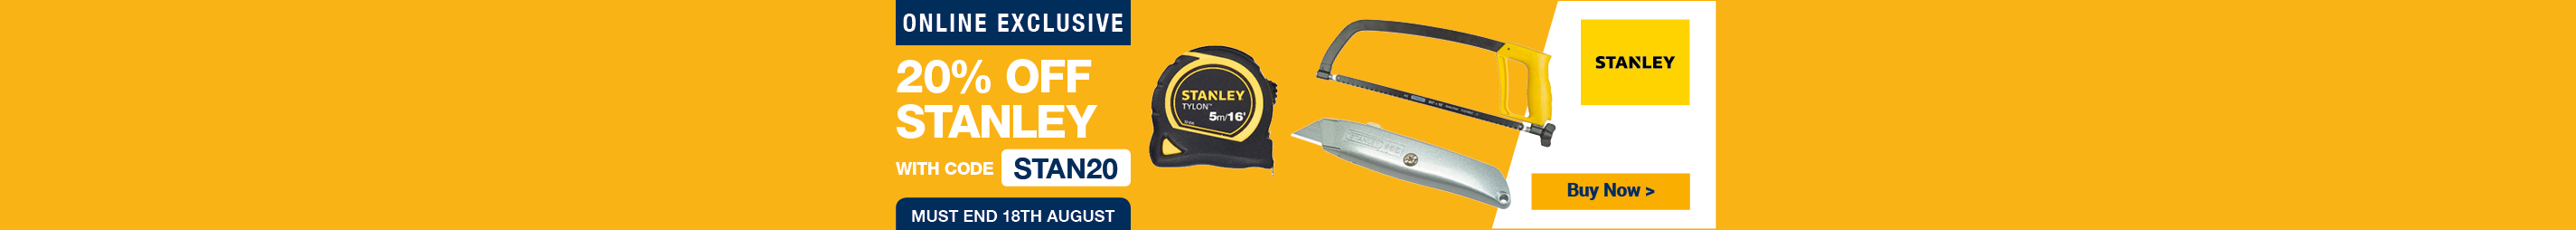 20% off Stanley use code STAN20